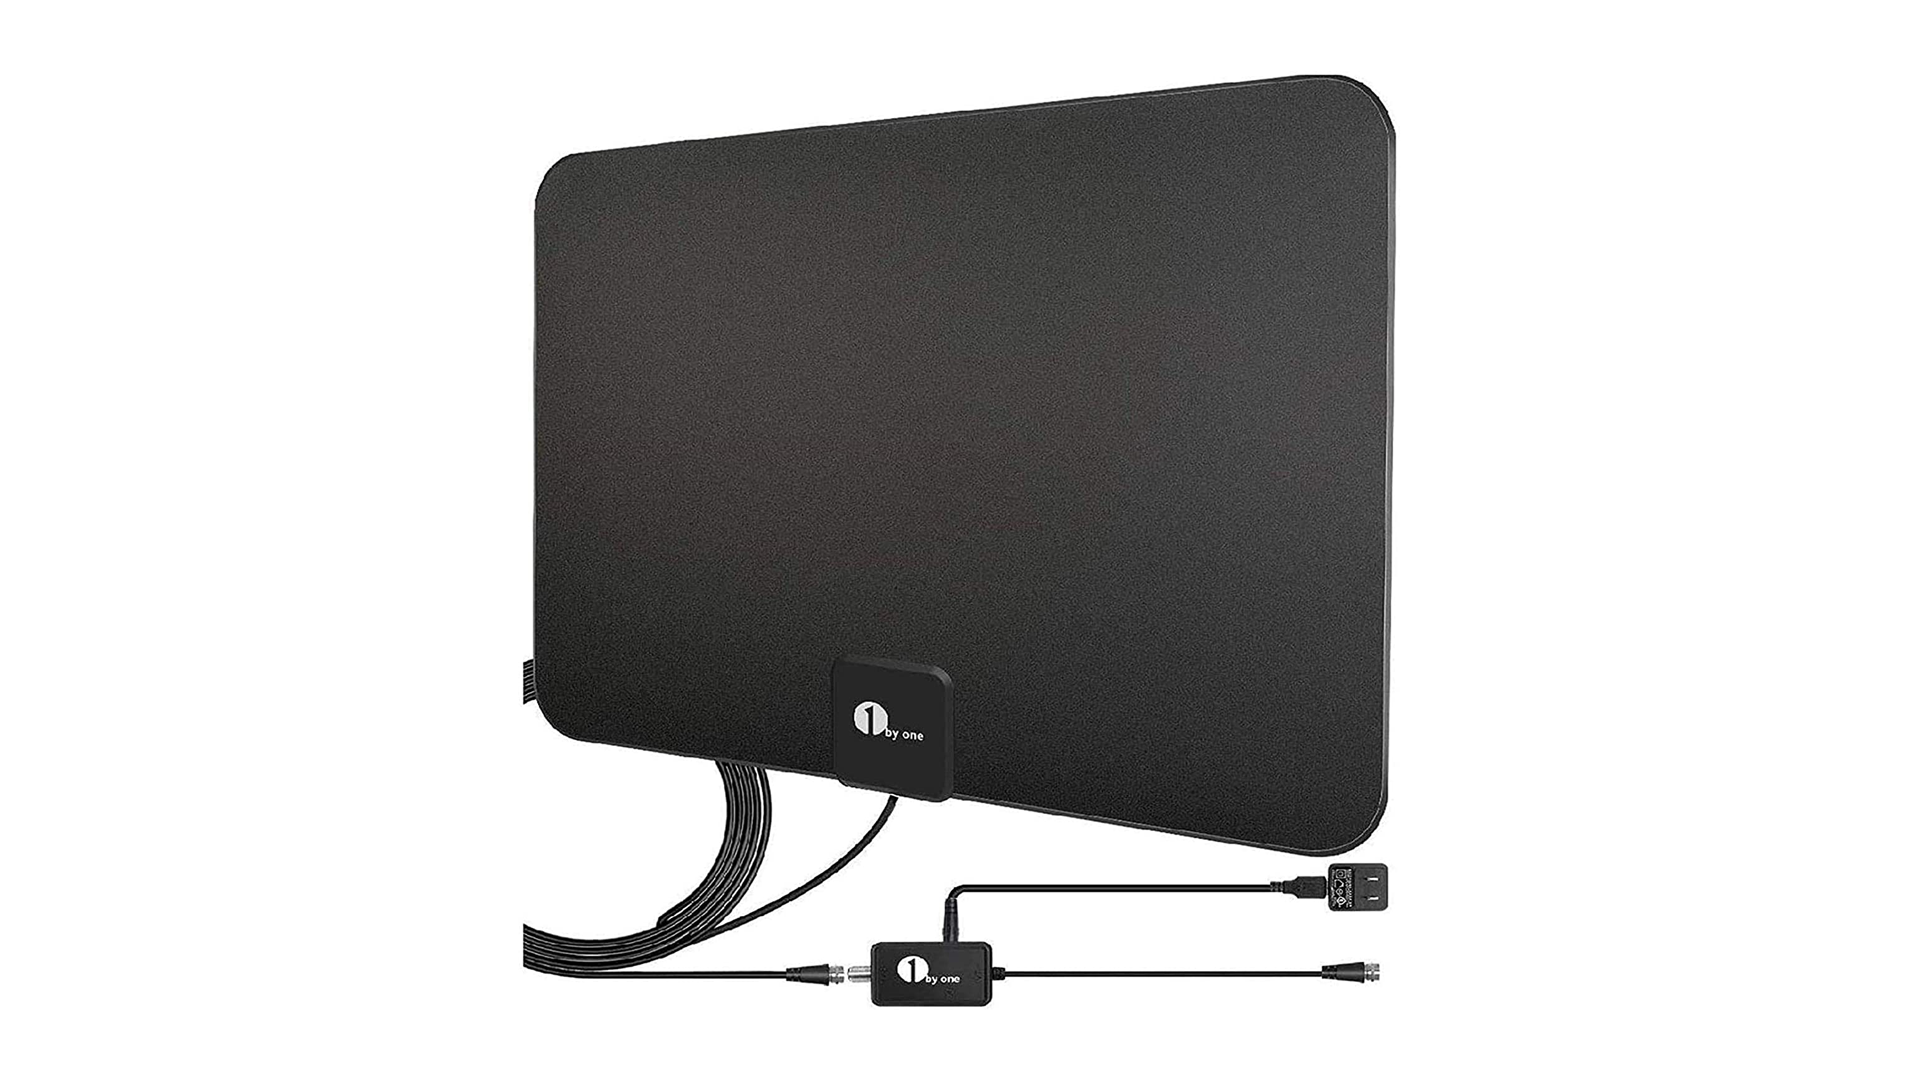 A photo of the 1 By One indoor digital antenna.